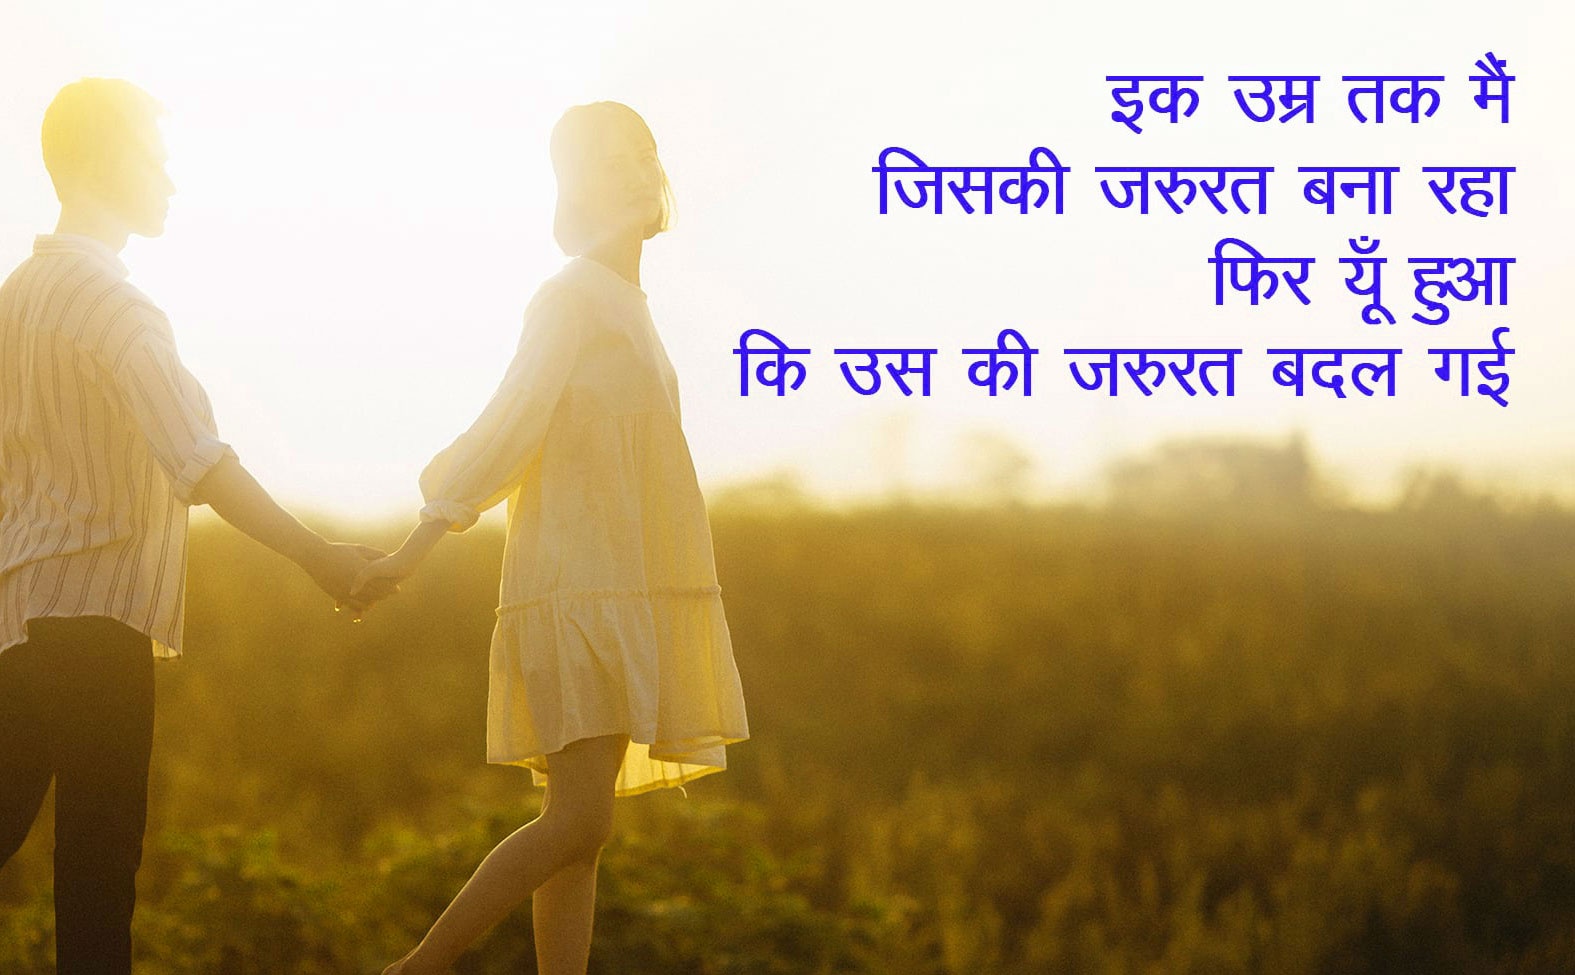 Hindi-Bewafa-Shayari-Images-37